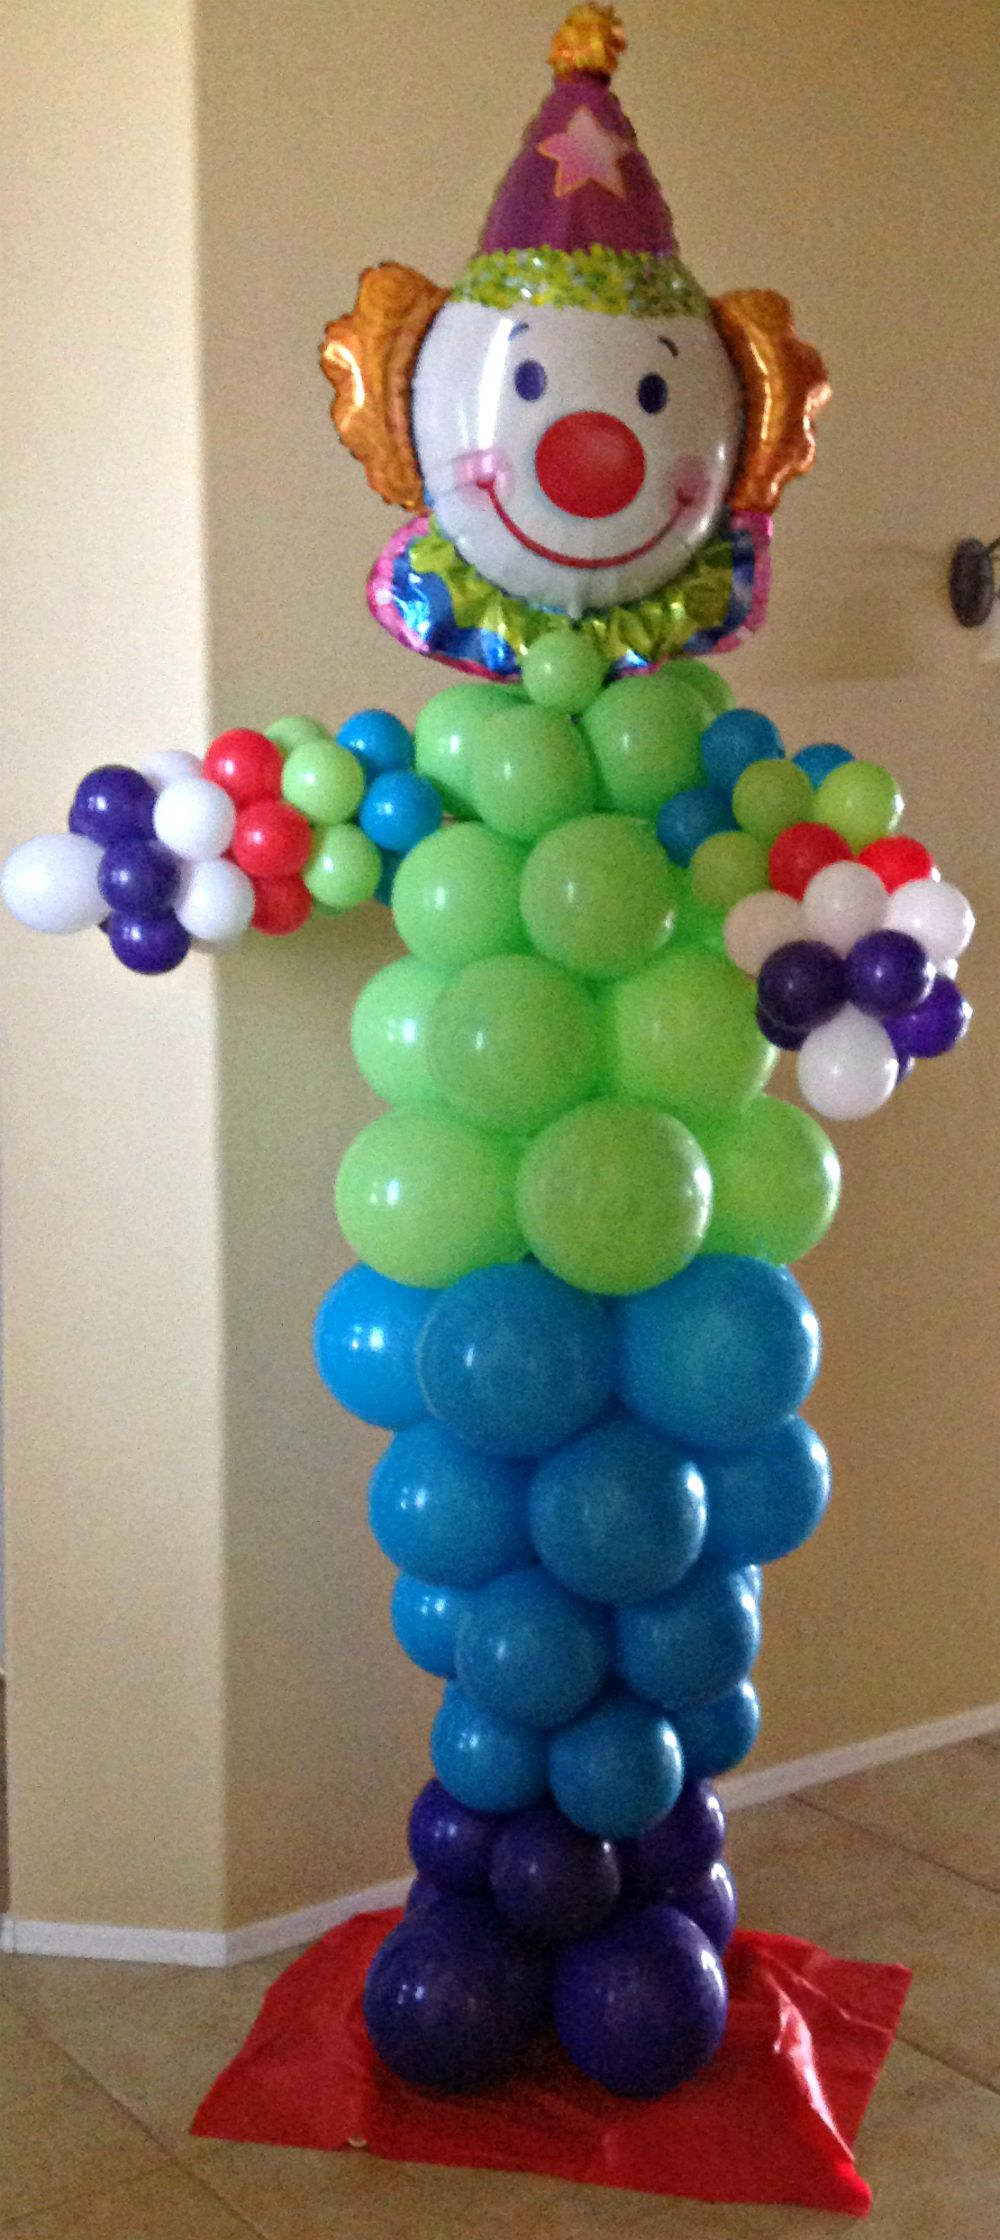 Balloon Character Bouquets - Tucson's Balloon Lady